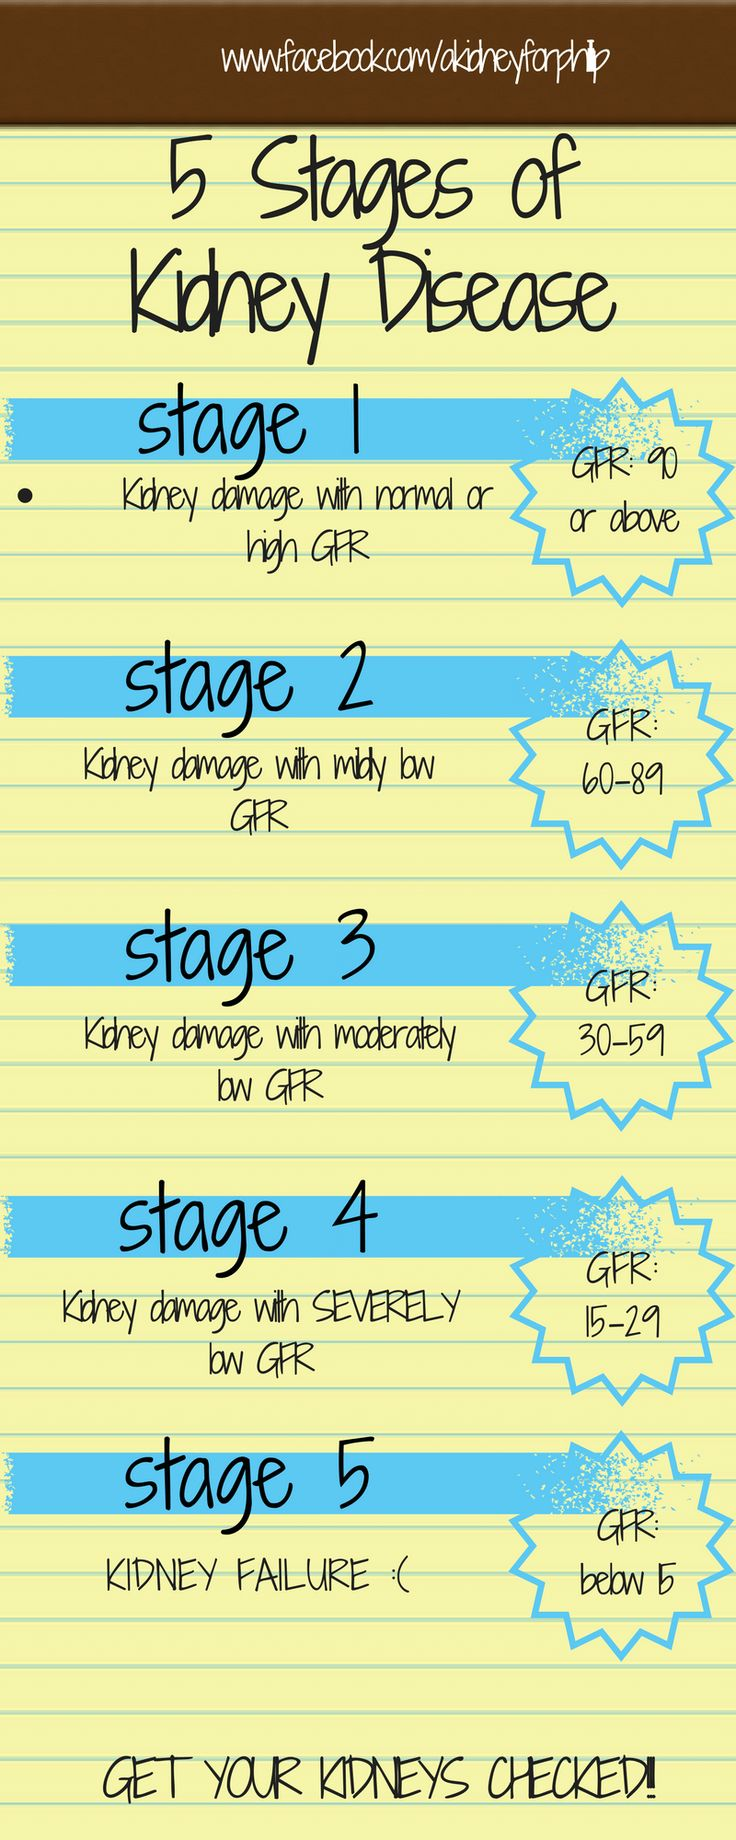 5 Stages of Kidney Disease Infographic www.facebook.com/akidneyforphillip